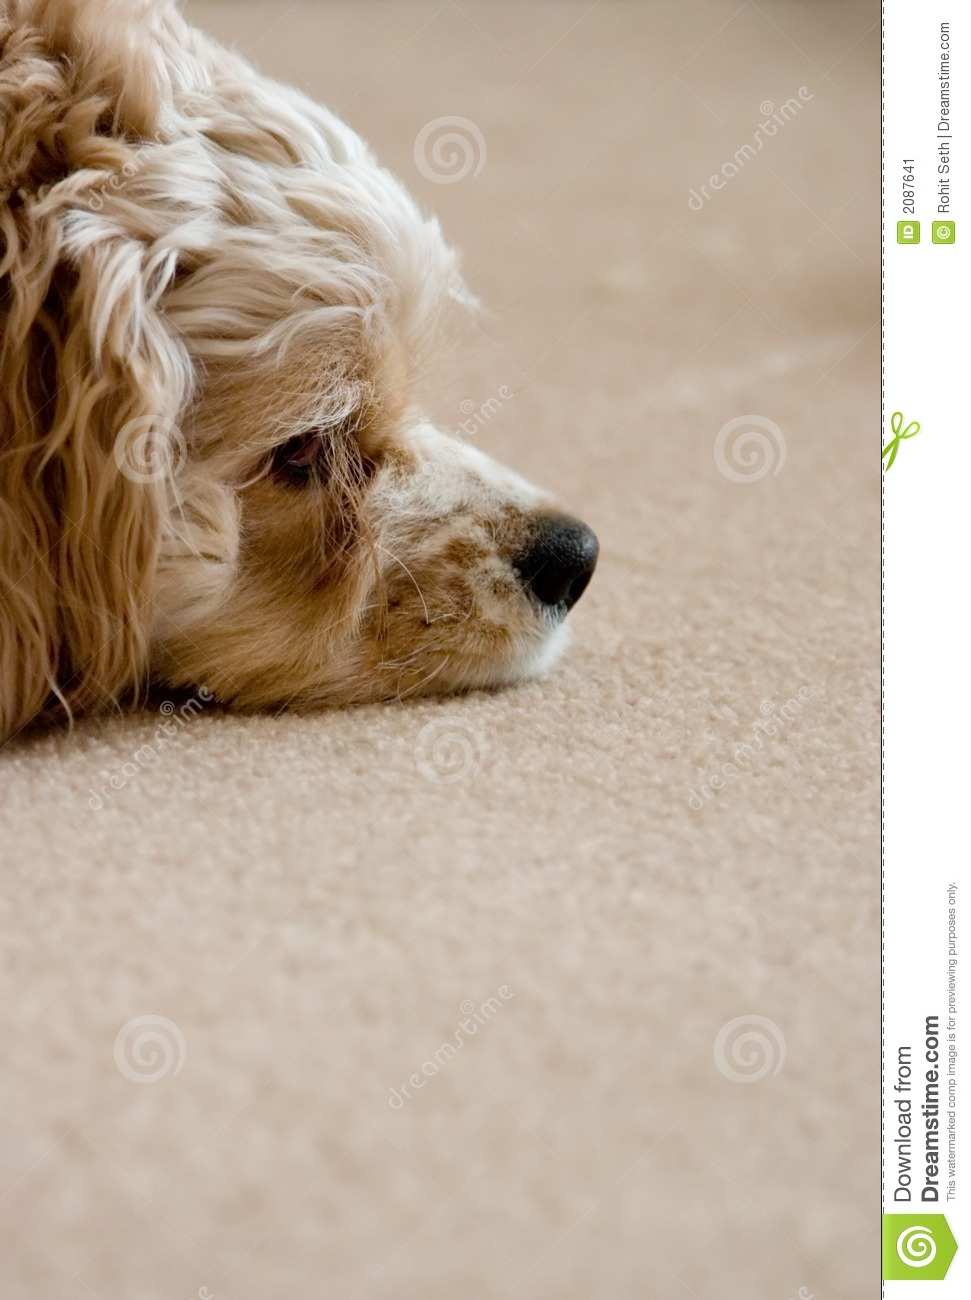 Relaxing Dog Stock Image - Image: 2087641 Relaxing Dogs